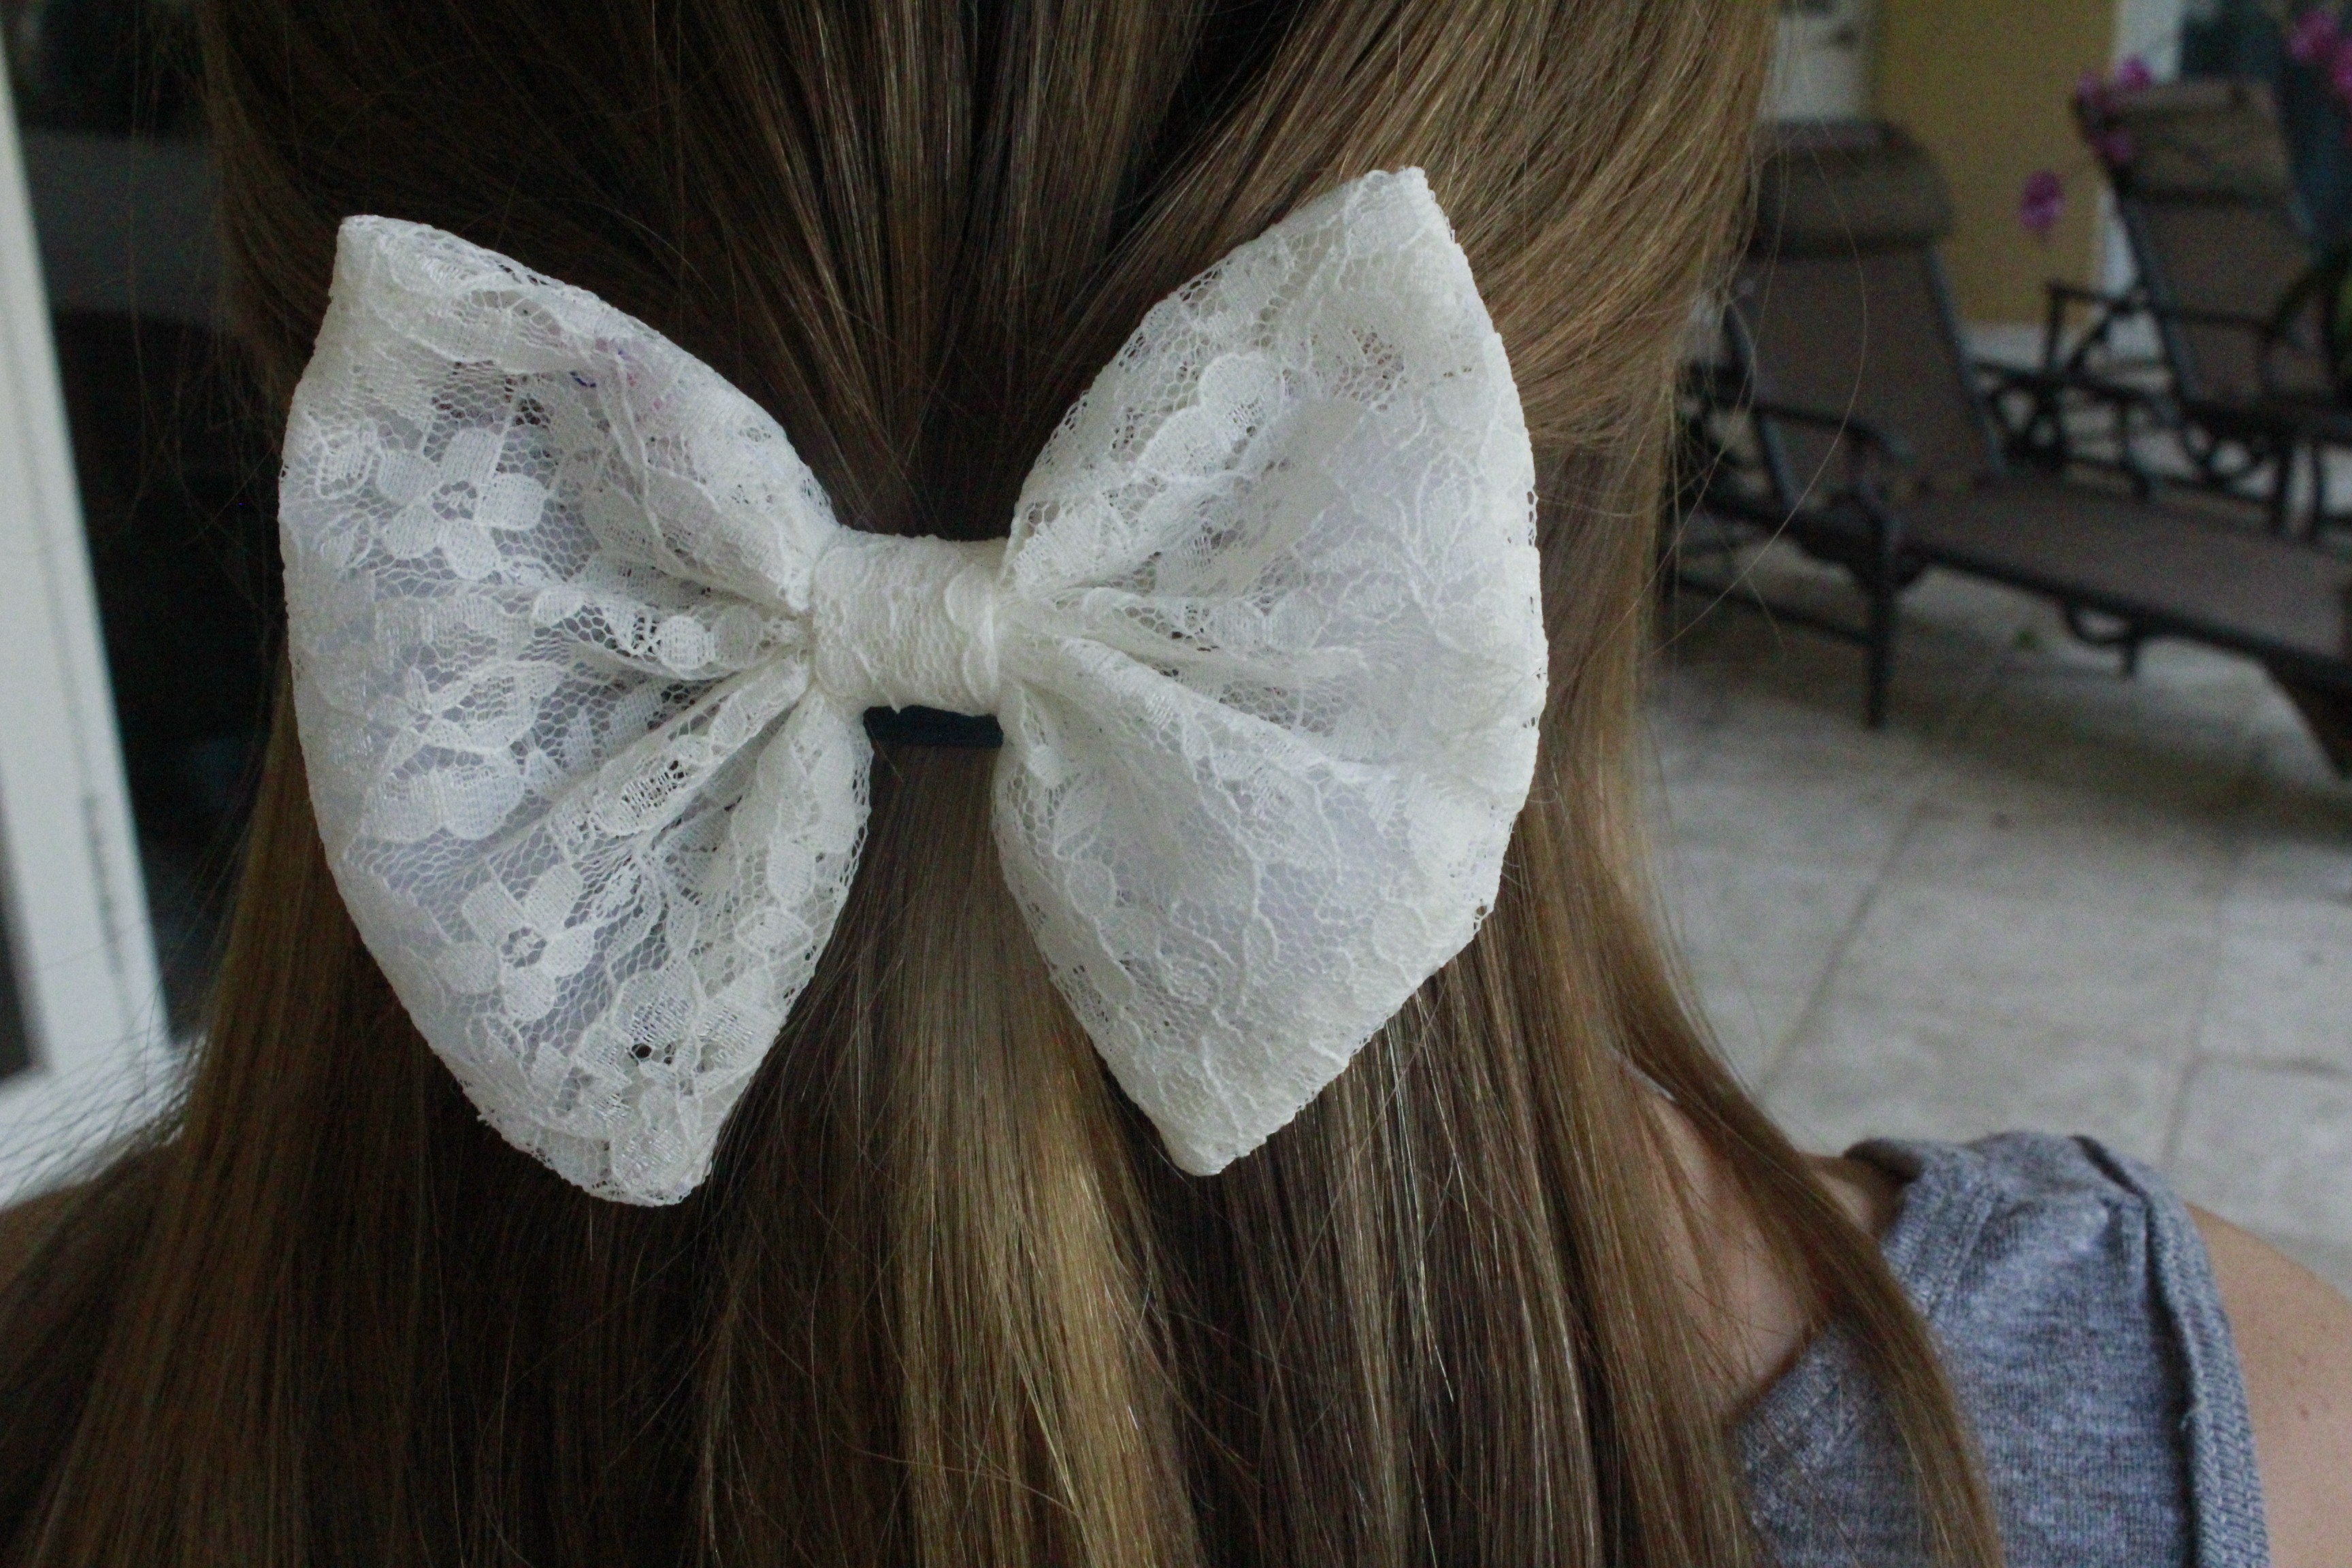 Caitlin S Bowtique White Lace Bow Online Store Powered